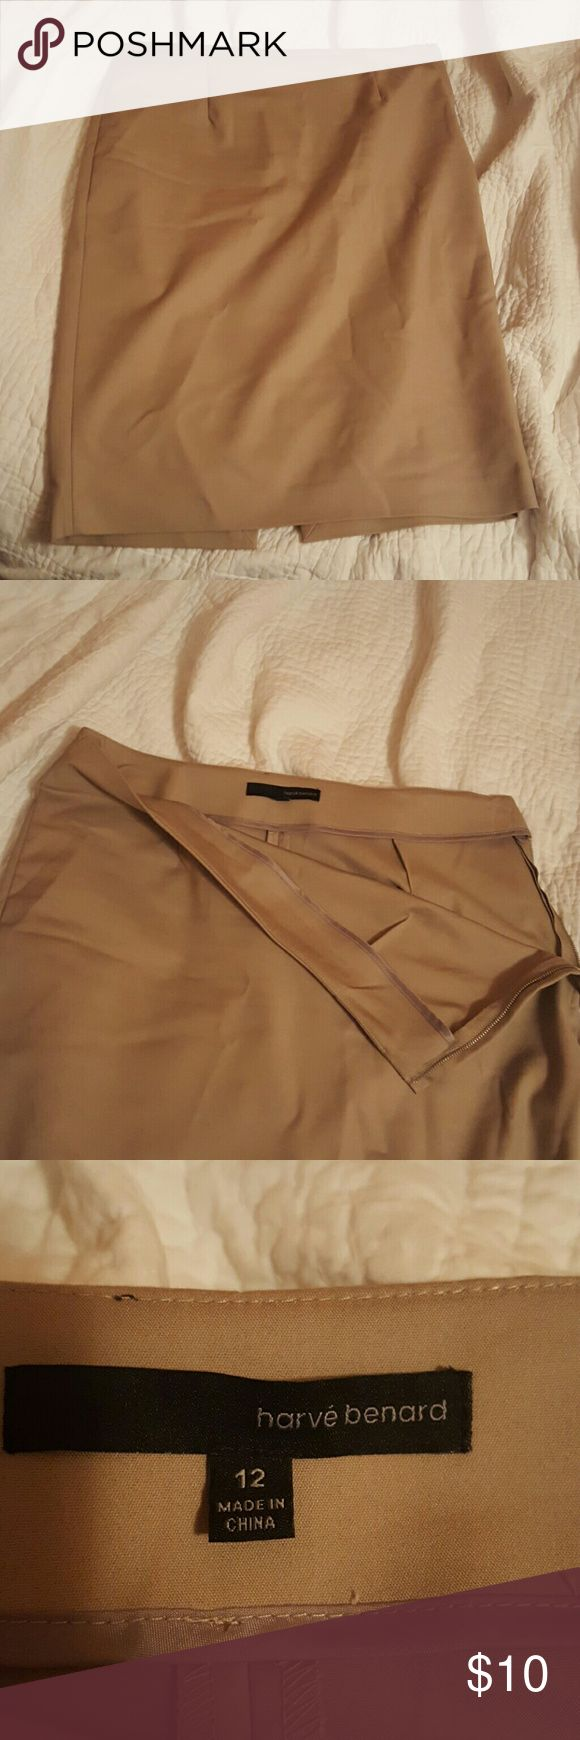 Harve Bernard Tan Pencil Skirt This skirt is in perfect condition! It just needs a little ironing. It is amazingly comfortable material! Not like other stiff pencil skirts. Harve Benard Skirts Pencil